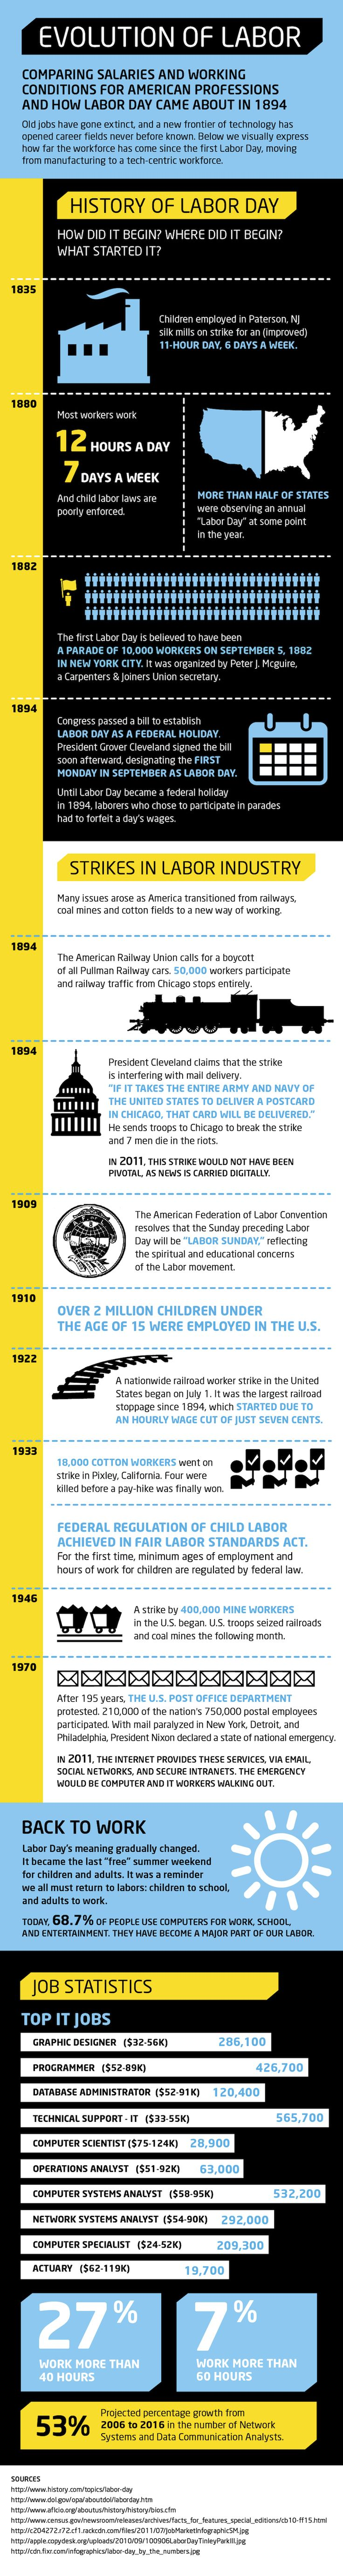 Do You Remember Why Labor Day Is Called Labor Day?